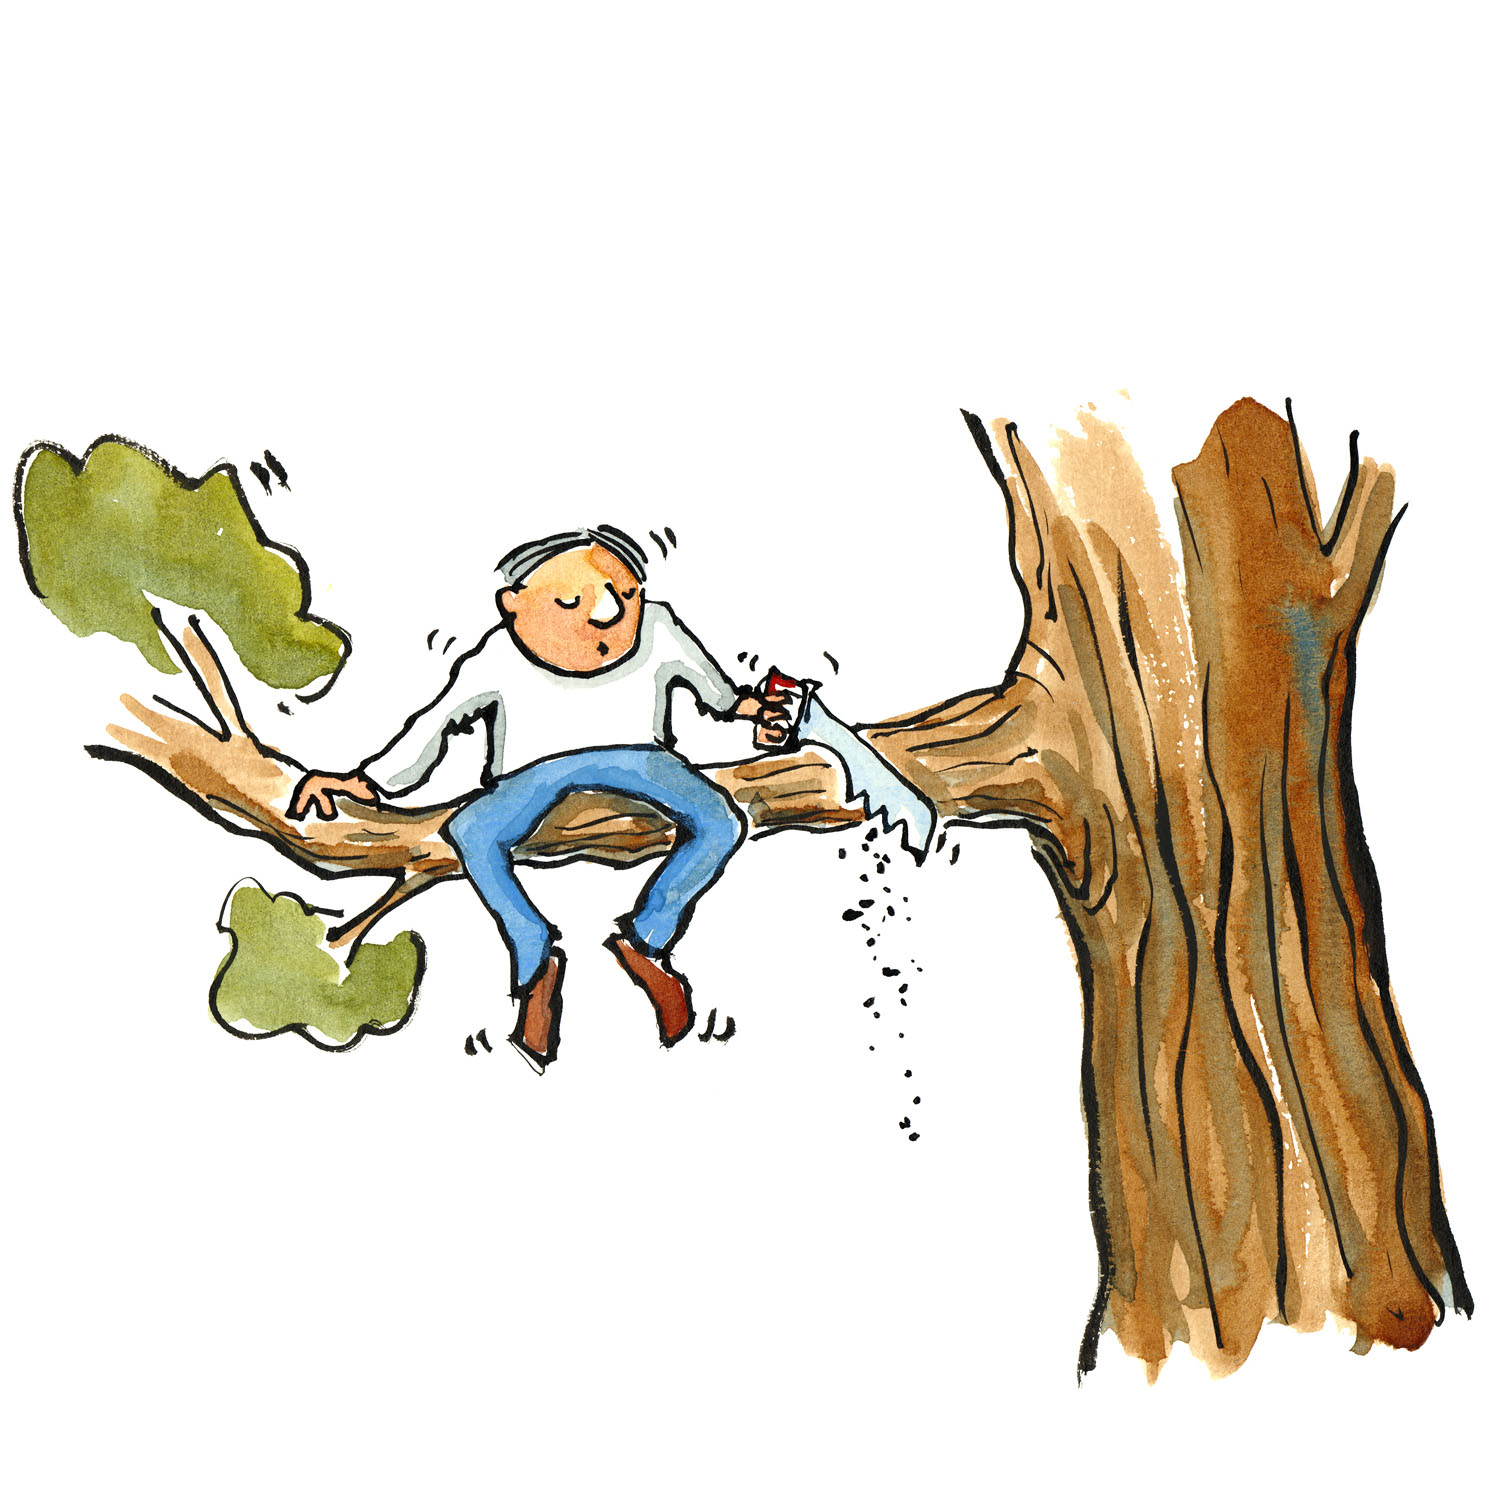 man-cutting-the-branch-sitting-on-illustration-by-frits-ahlefeldt1500-square.jpg